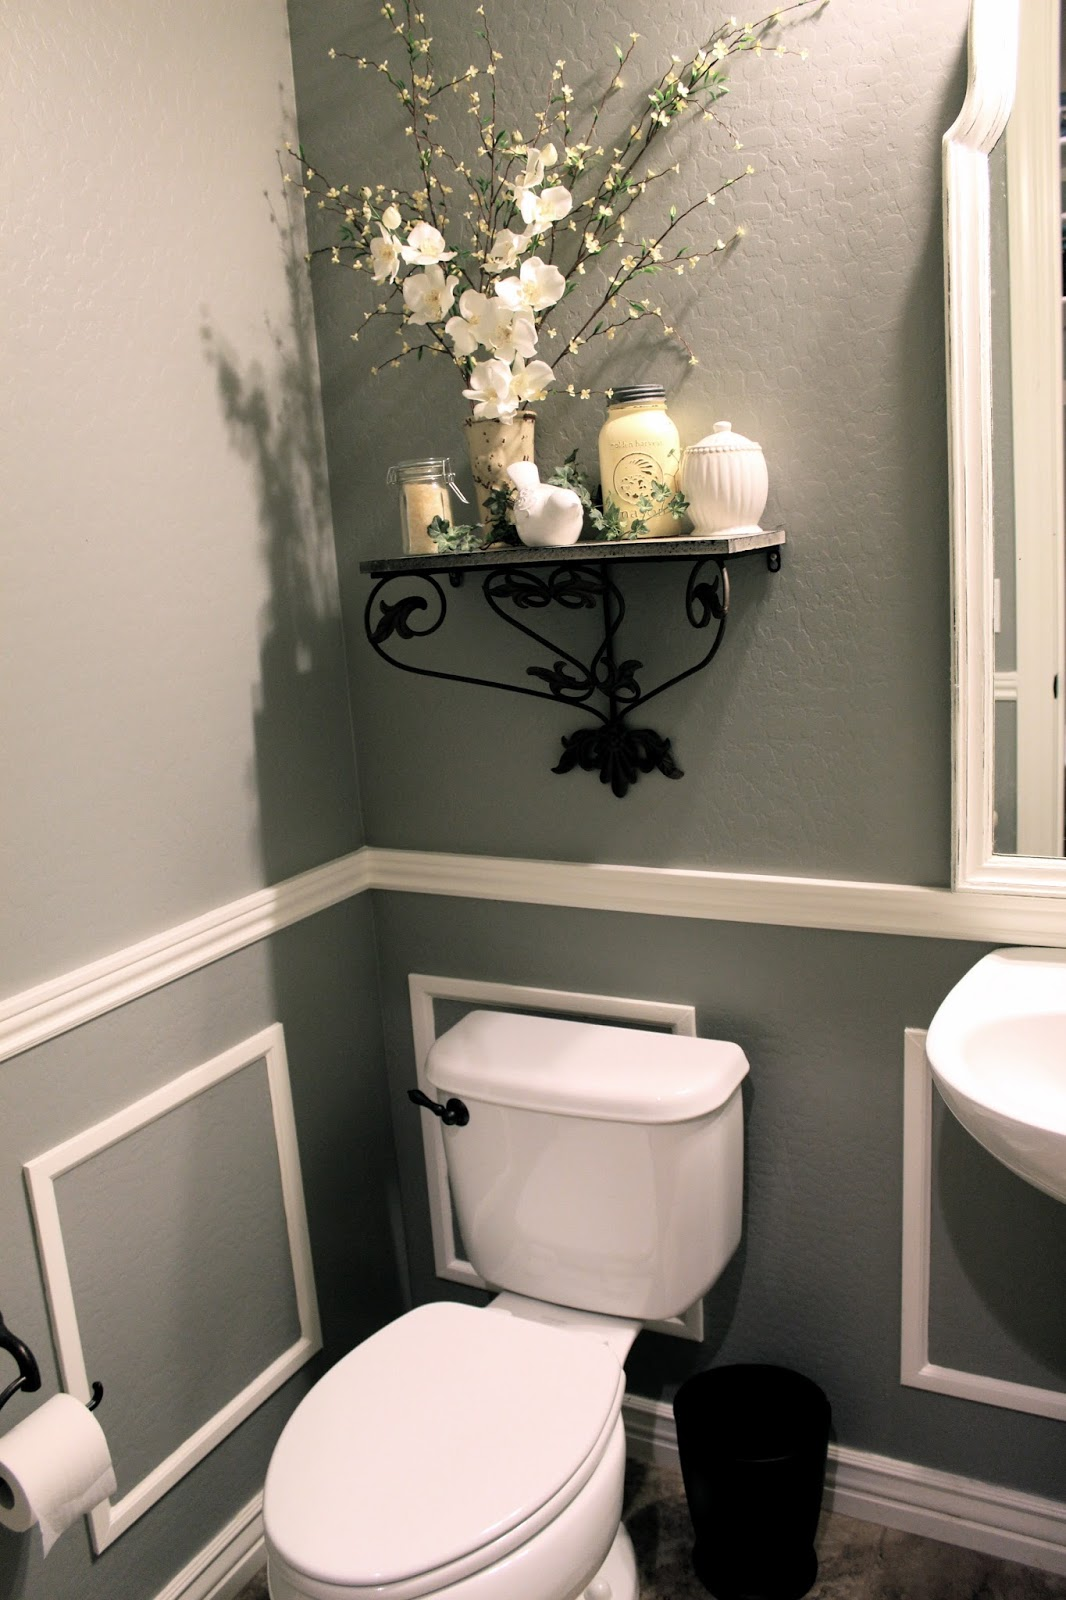 Bathroom Wall Paint Design Ideas ~ Little bit of paint thrifty thursday bathroom reveal